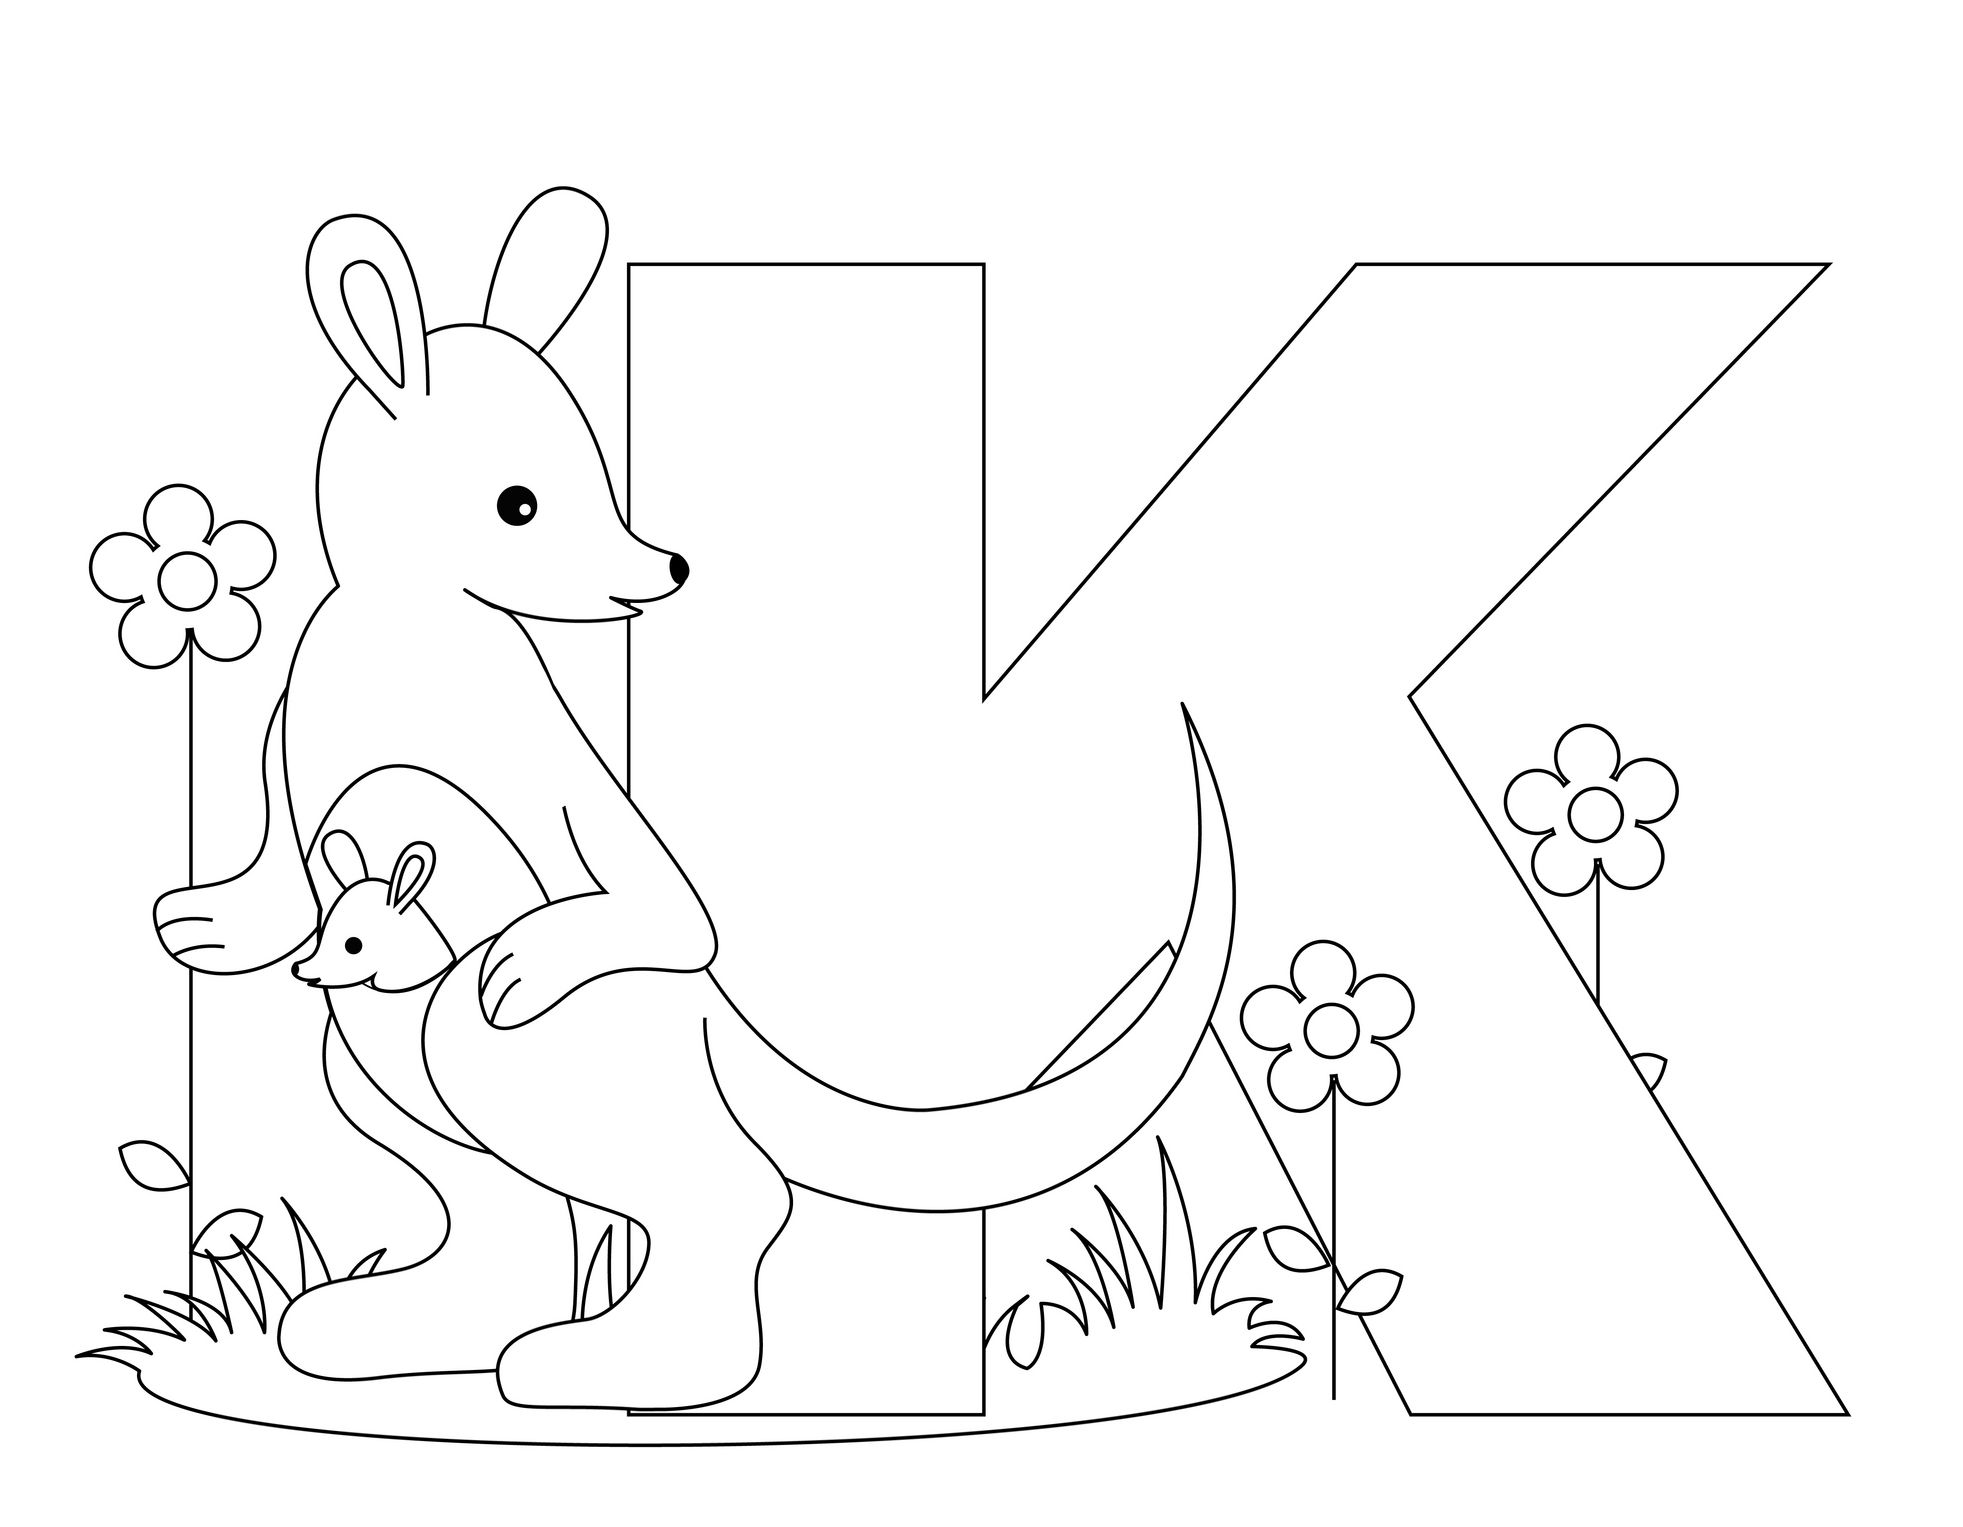 free kindergarten alphabet worksheets animal alphabet letter k coloring worksheet from kiboomu worksheets free alphabet